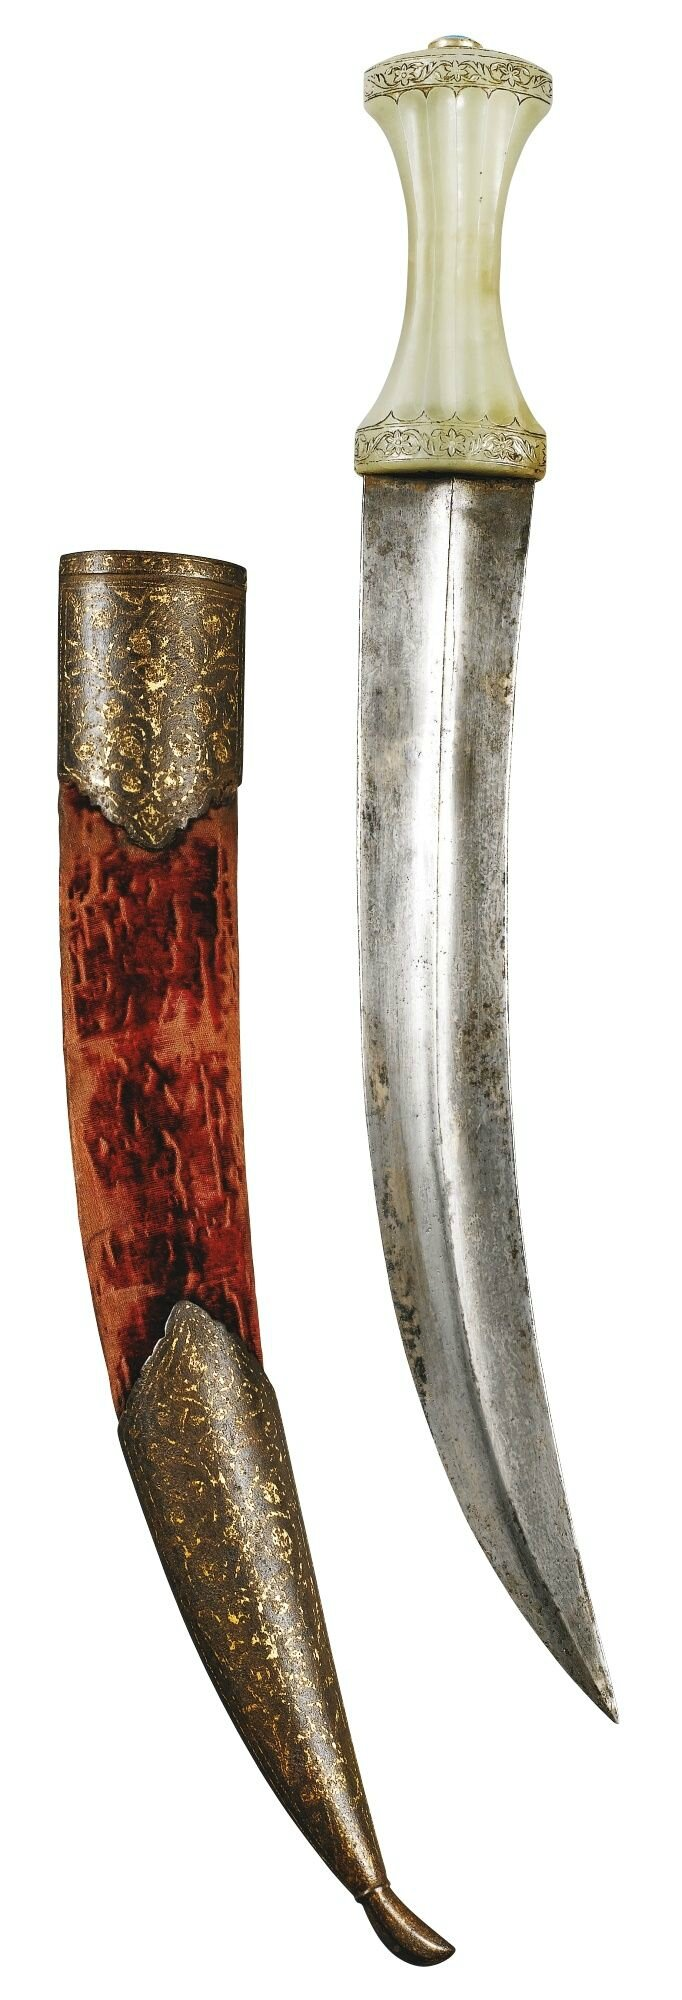 A Mughal jade-hilted dagger and scabbard, North India, late 18th century